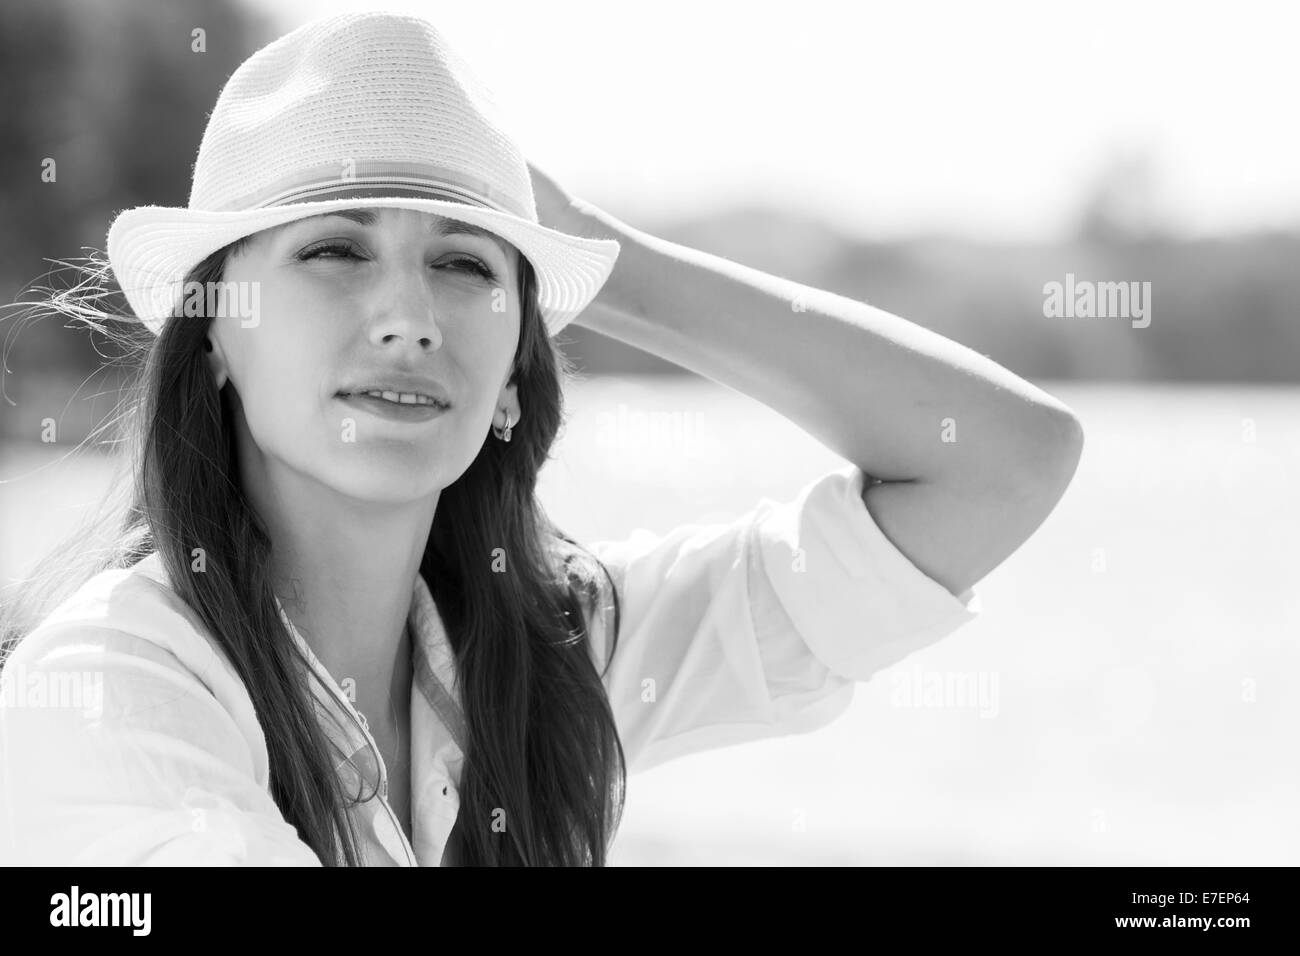 Caucasian girl in hat at summer midday near the river or lake. Black and white image Stock Photo